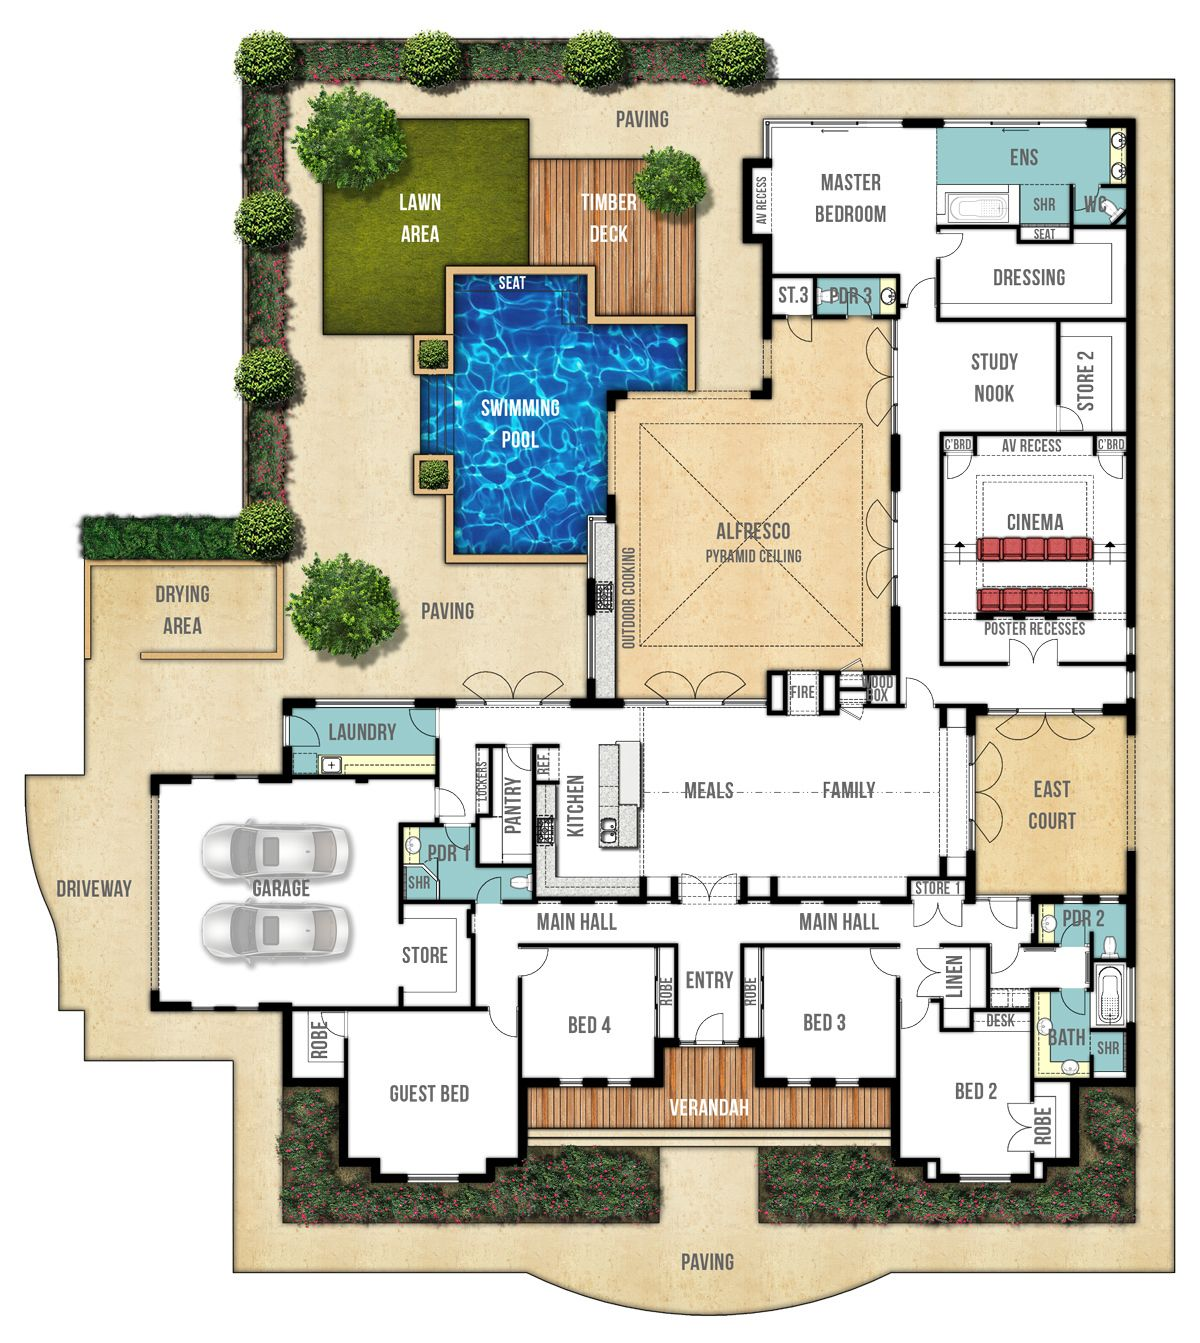 House design plan - Single Storey Home Design Plan The Farmhouse By Boyd Design Perth